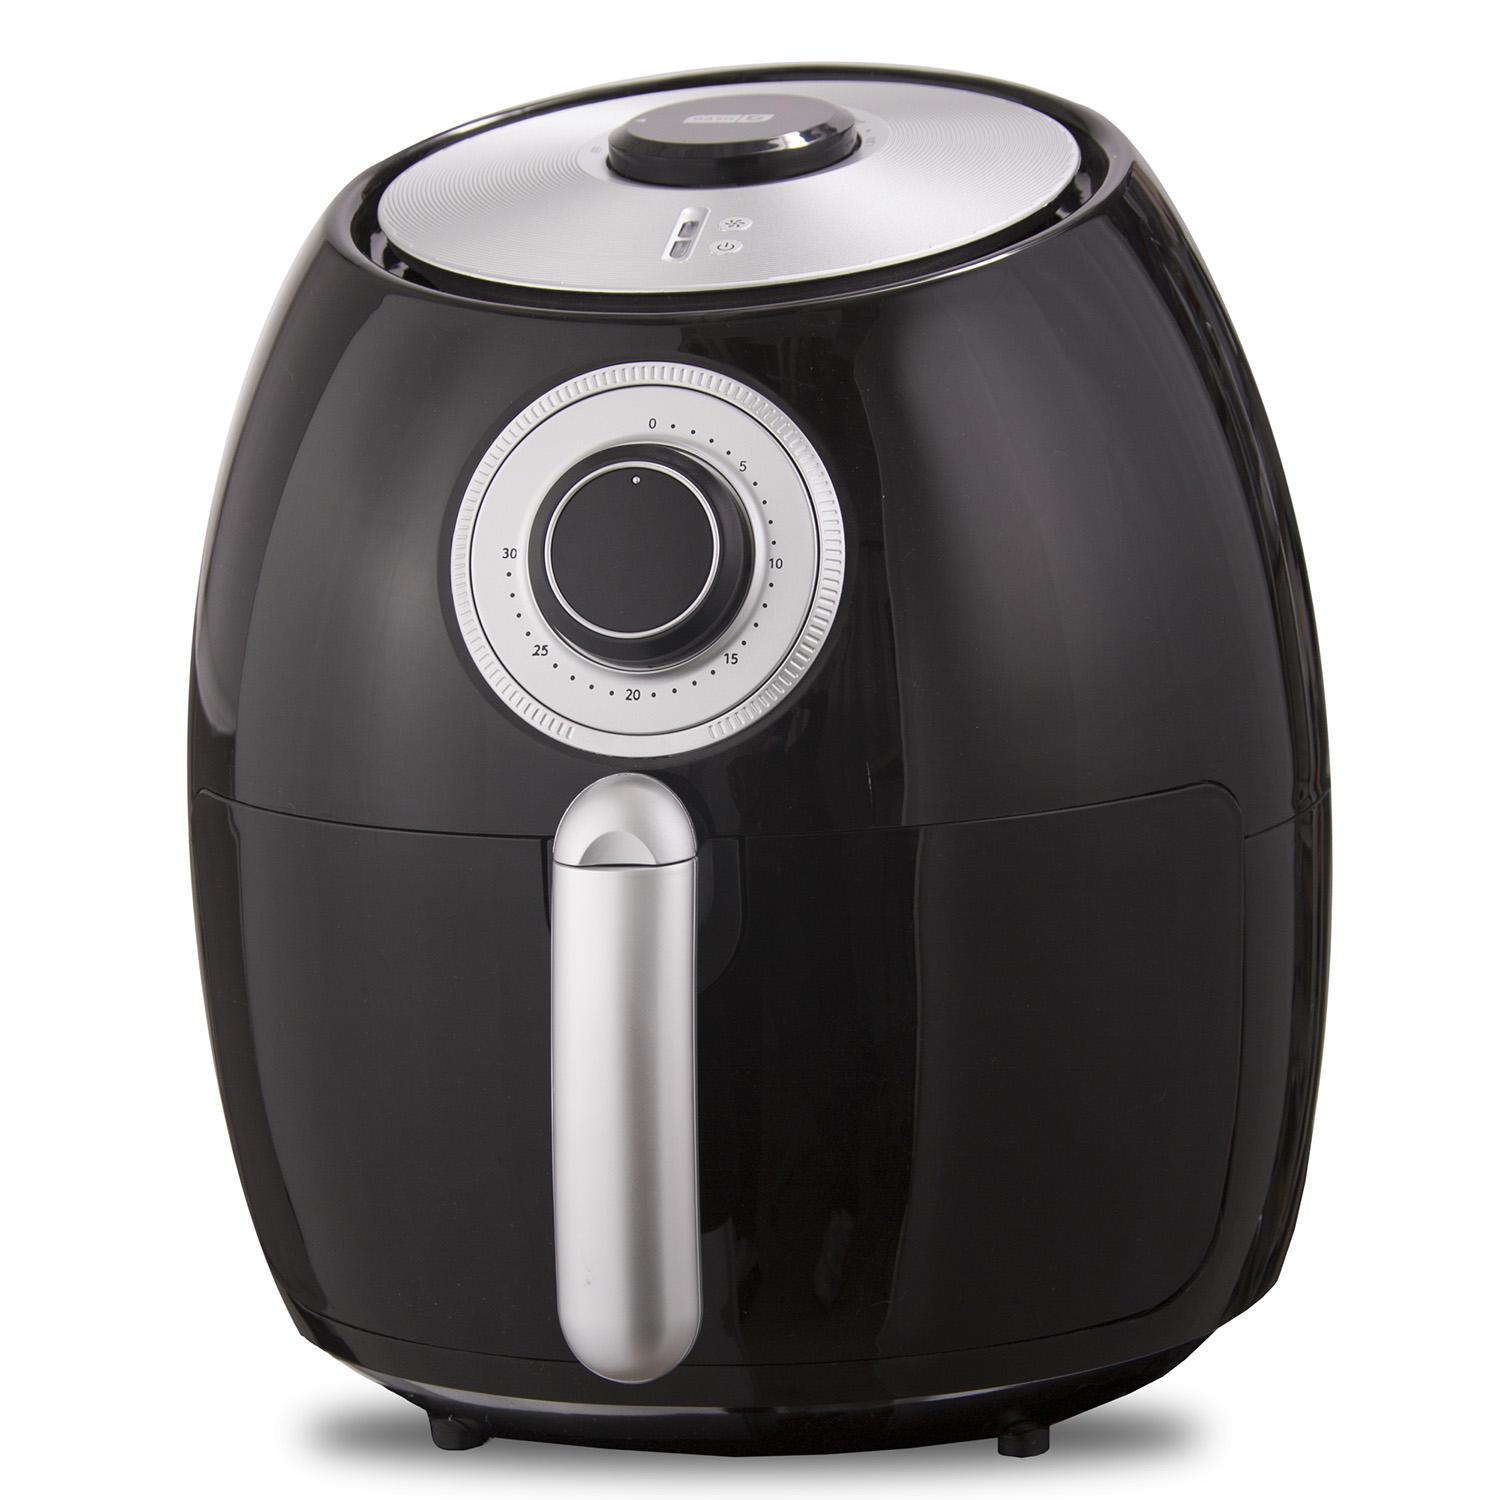 Dash 6 Quart Family Size Air Fryer (Assorted Colors)